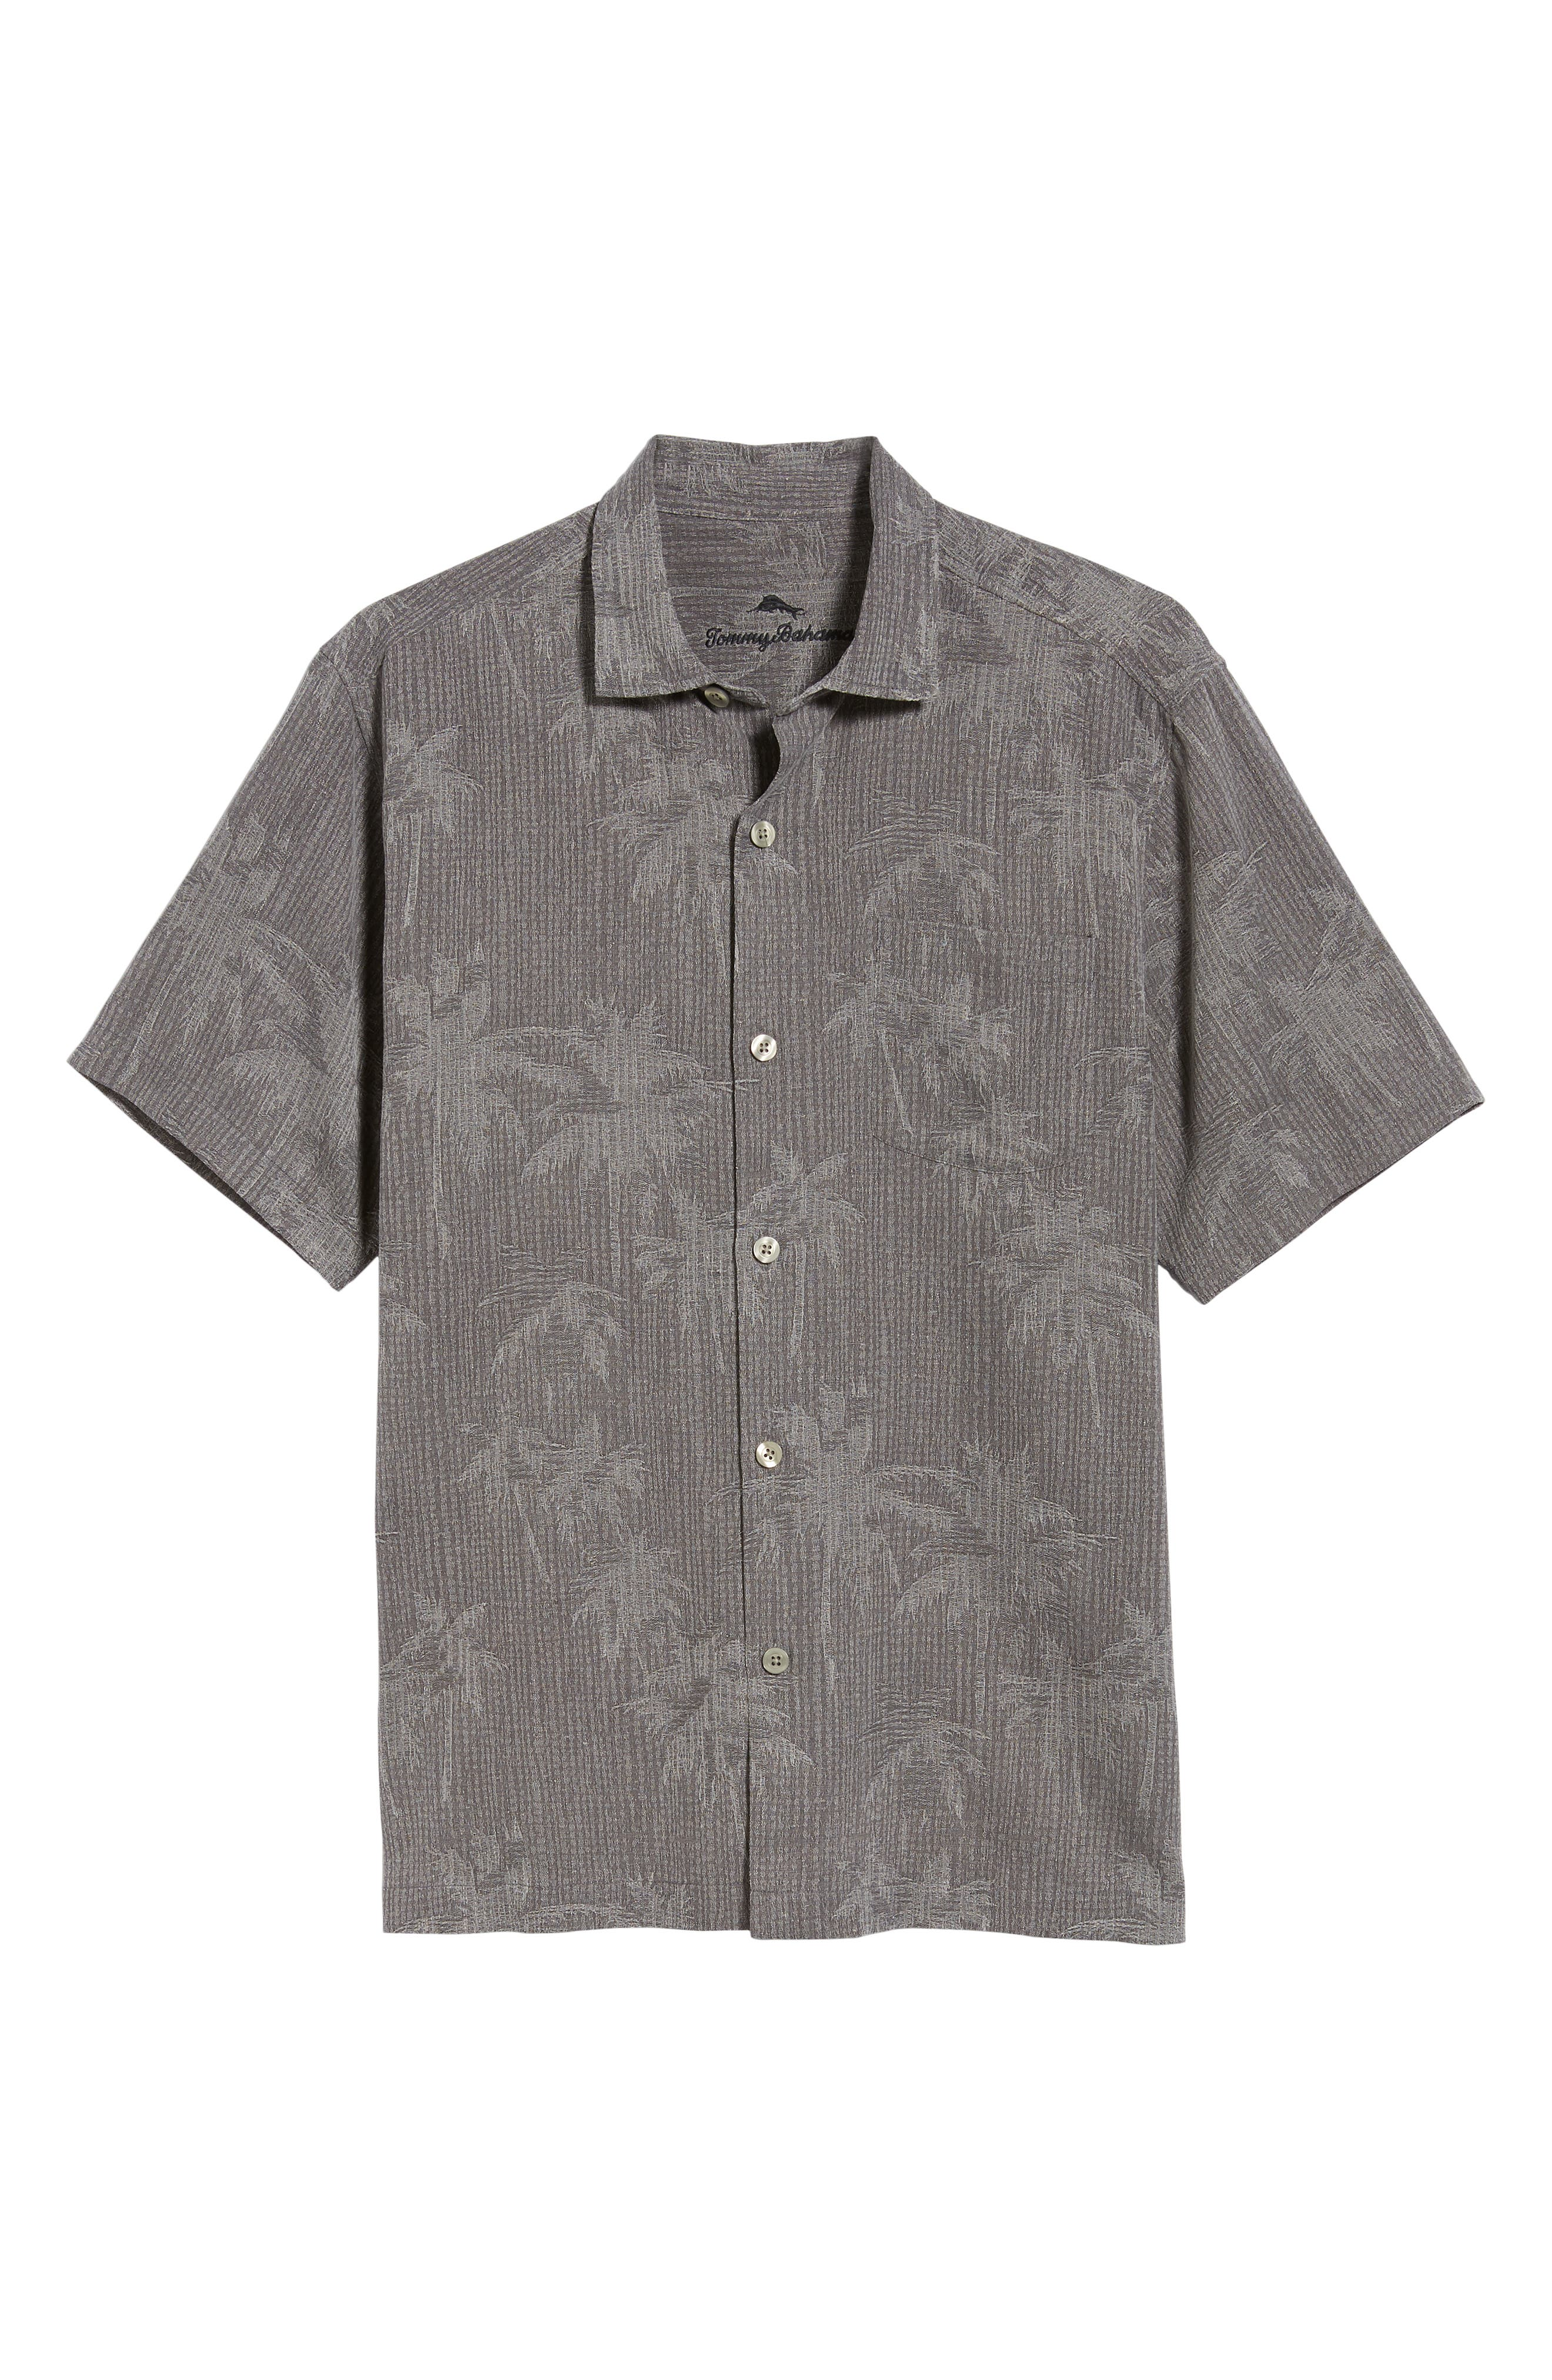 TOMMY BAHAMA, Digital Palms Silk Sport Shirt, Alternate thumbnail 5, color, CAVE